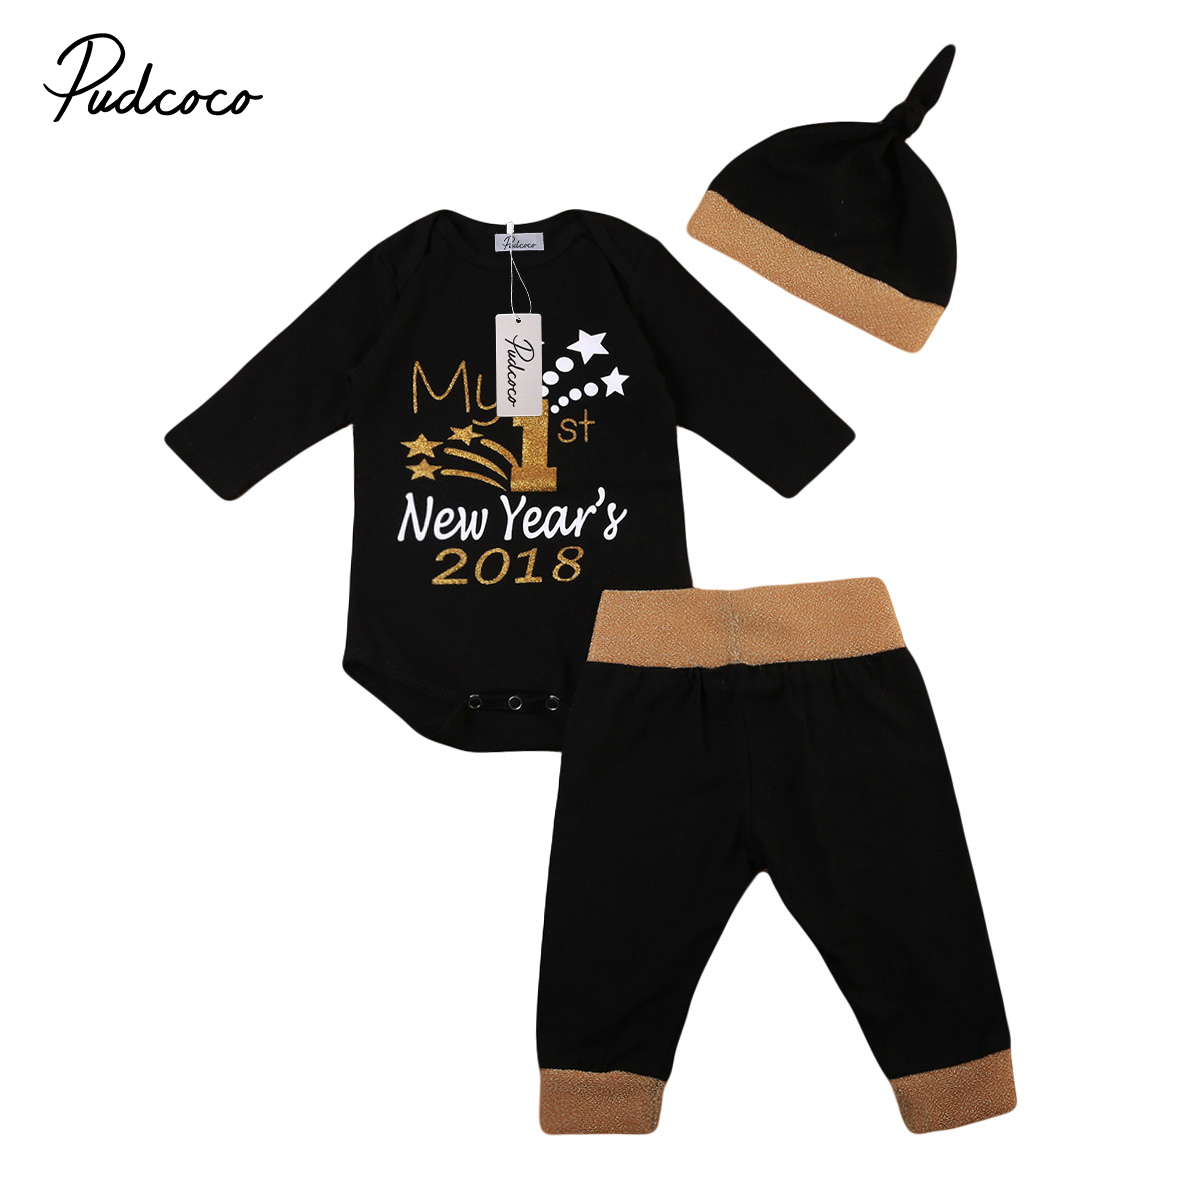 Pudcoco New Christmas Baby Suit Toddler Baby Boy Girls Letter Romper Infant Girls Sequin ...